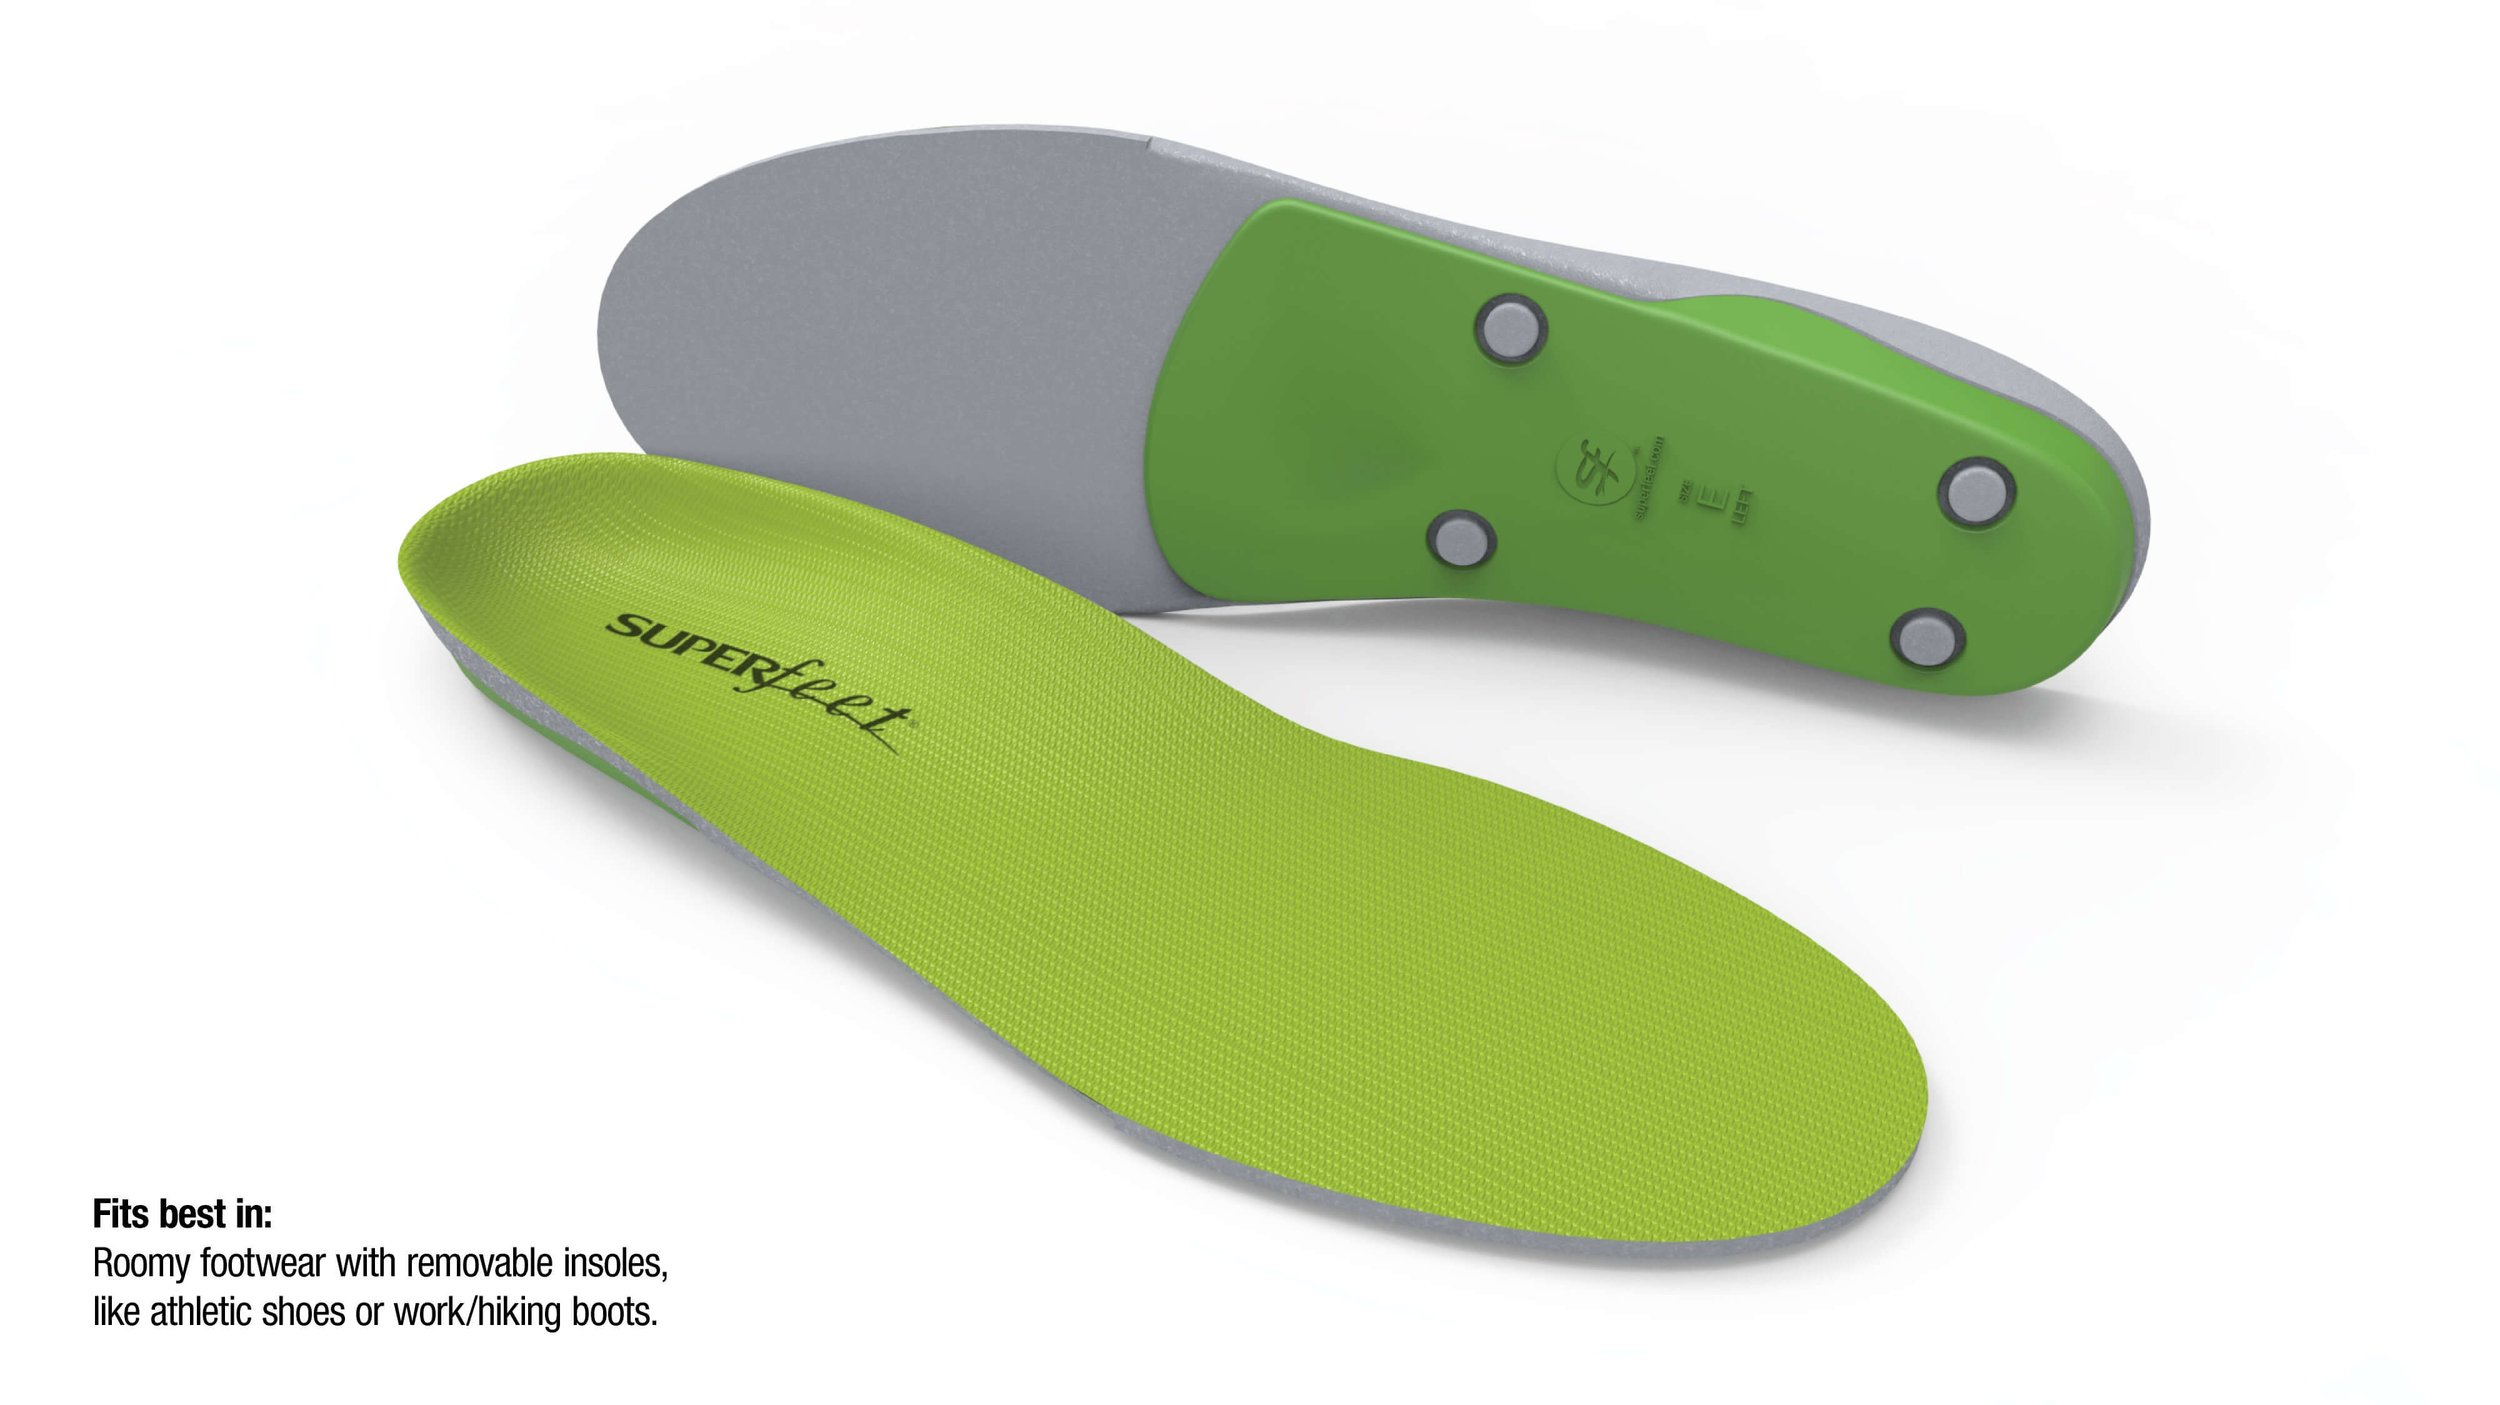 Superfeet Green - DURABLE CONSTRUCTIONSuperfeet insoles keep their shape, delivering reliable support and comfort for up to 12 months or 500 miles, whichever comes firstDEEP HEEL CUPFeatures the widest and deepest heel cup that offers maximum support and can help with natural shock absorptionSUPERFEET® SHAPEA high profile shape to help stabilize and support the foot, which can help reduce stress on feet, ankles and kneesHIGH-DENSITY FOAMClosed-cell foam supports and cushions the foot for long lasting comfort.ORGANIC, ODOR-CONTROL COATINGAll natural coating that eliminates odor-causing bacteriaSTABILIZER CAPActs as the base of the insole that supports the rearfoot and provides structure and stability to the foam layer